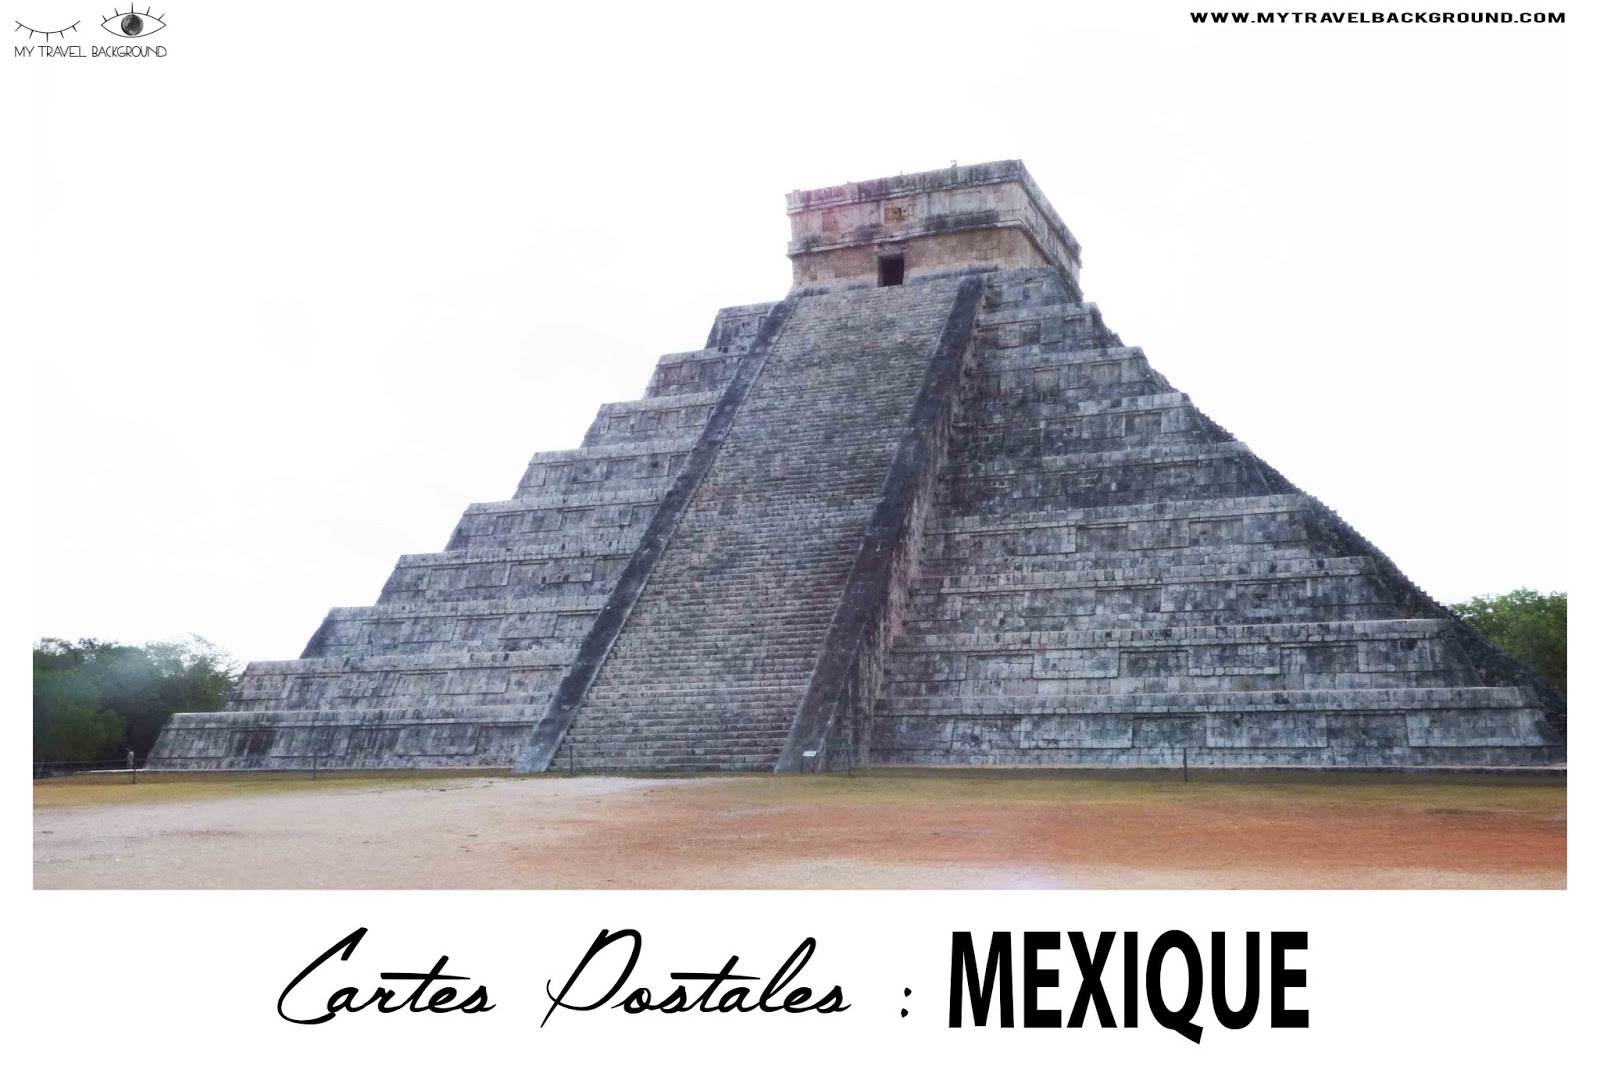 My Travel Background : cartes postales du Mexique